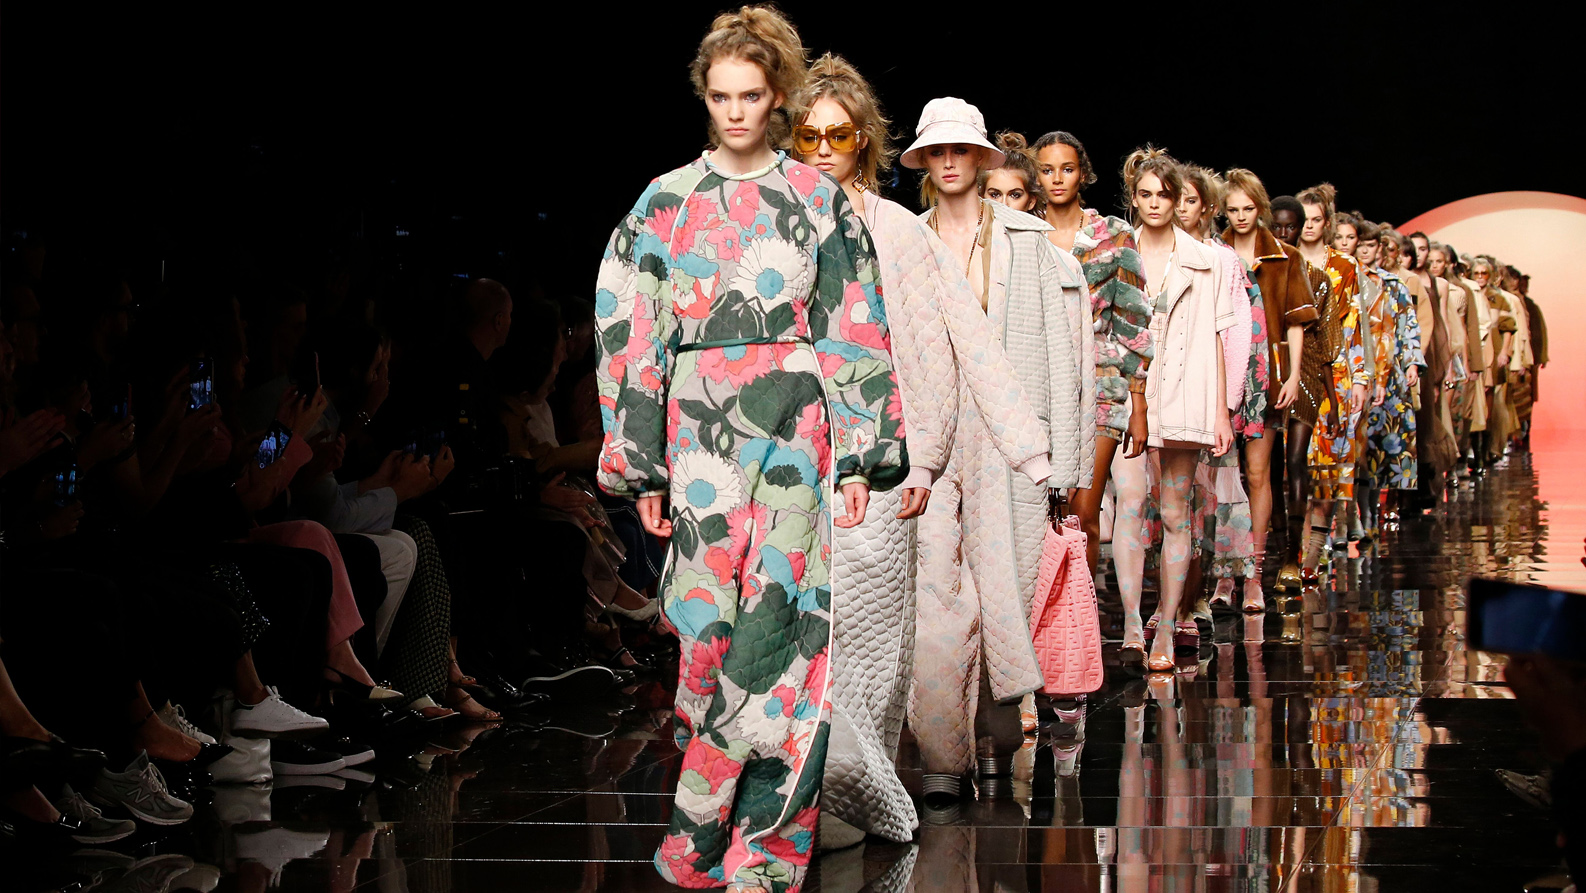 The Biggest Fashion Trends That Rocked The Spring Summer 2020 Runways